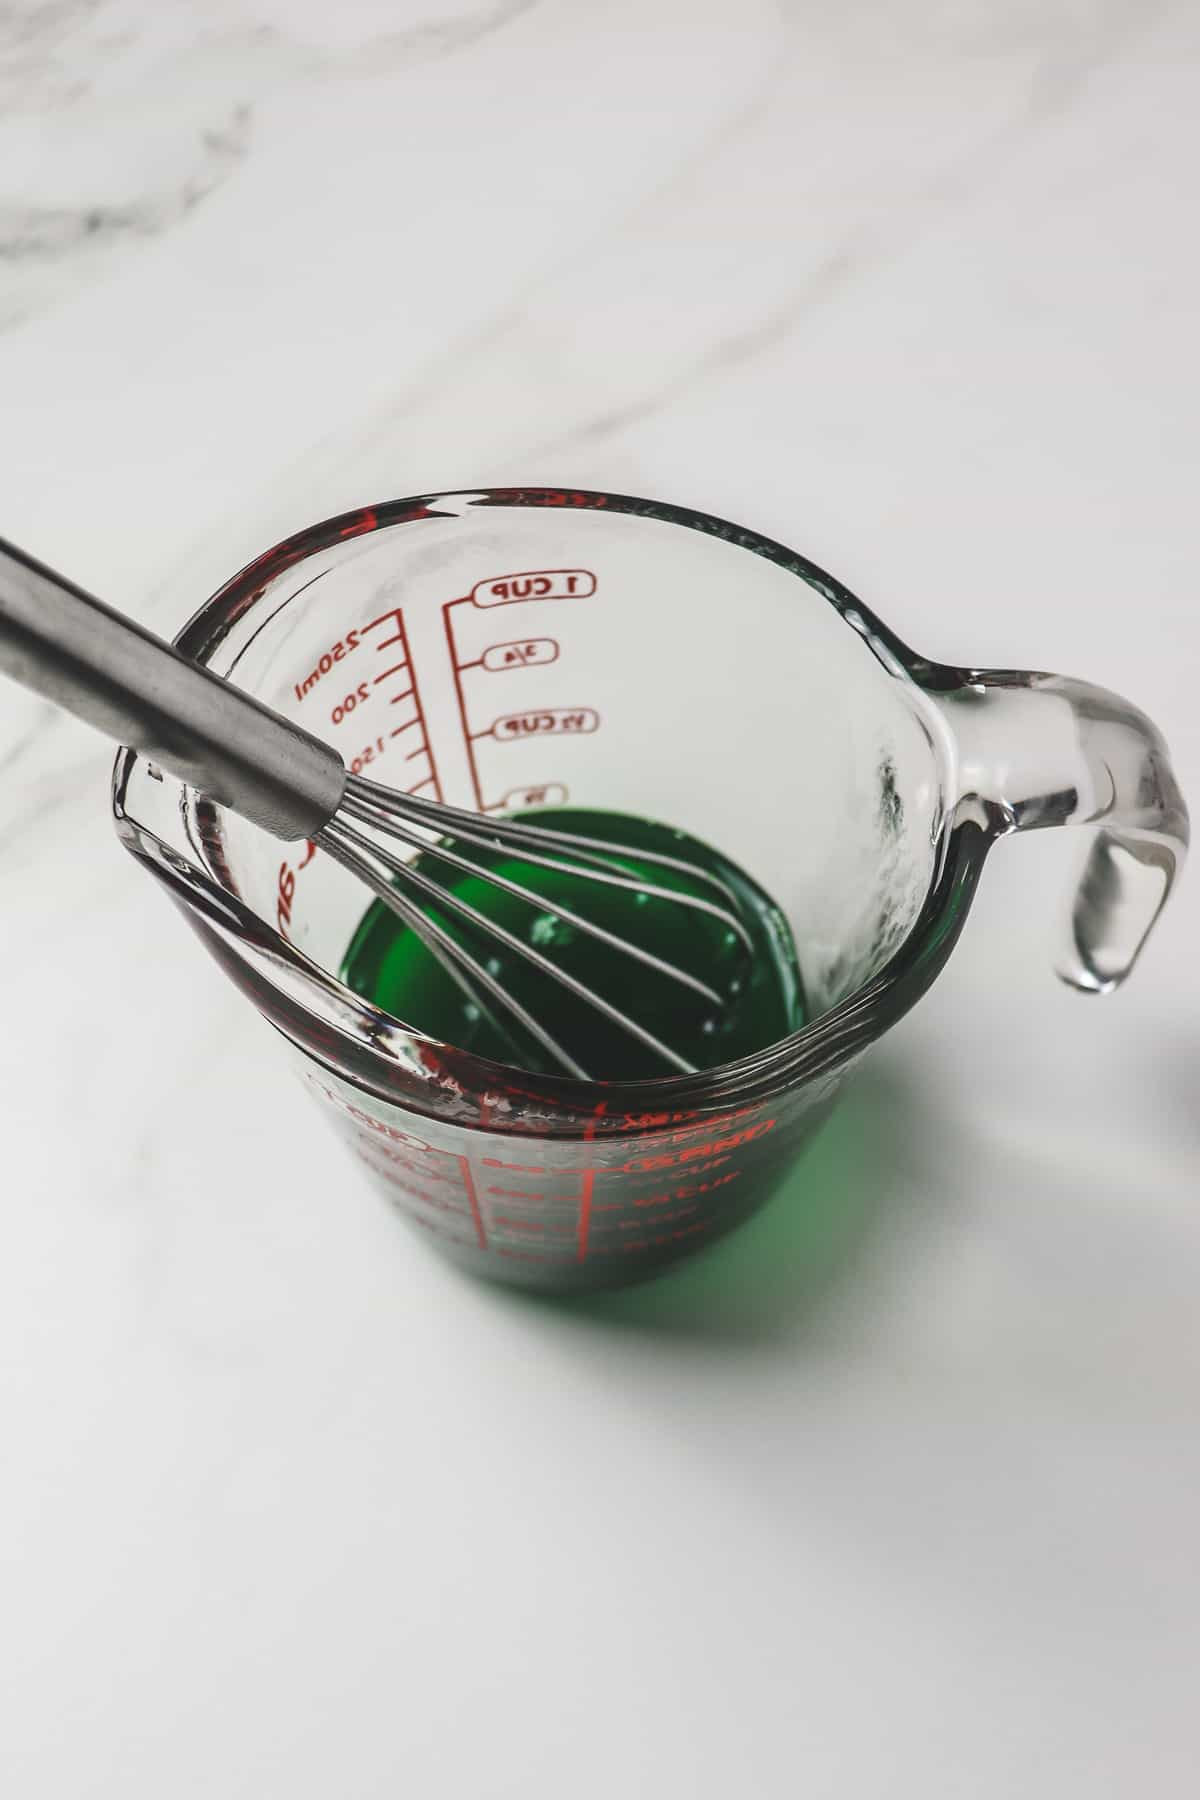 whisking the lime jello powder into boiling water in a small measuring cup